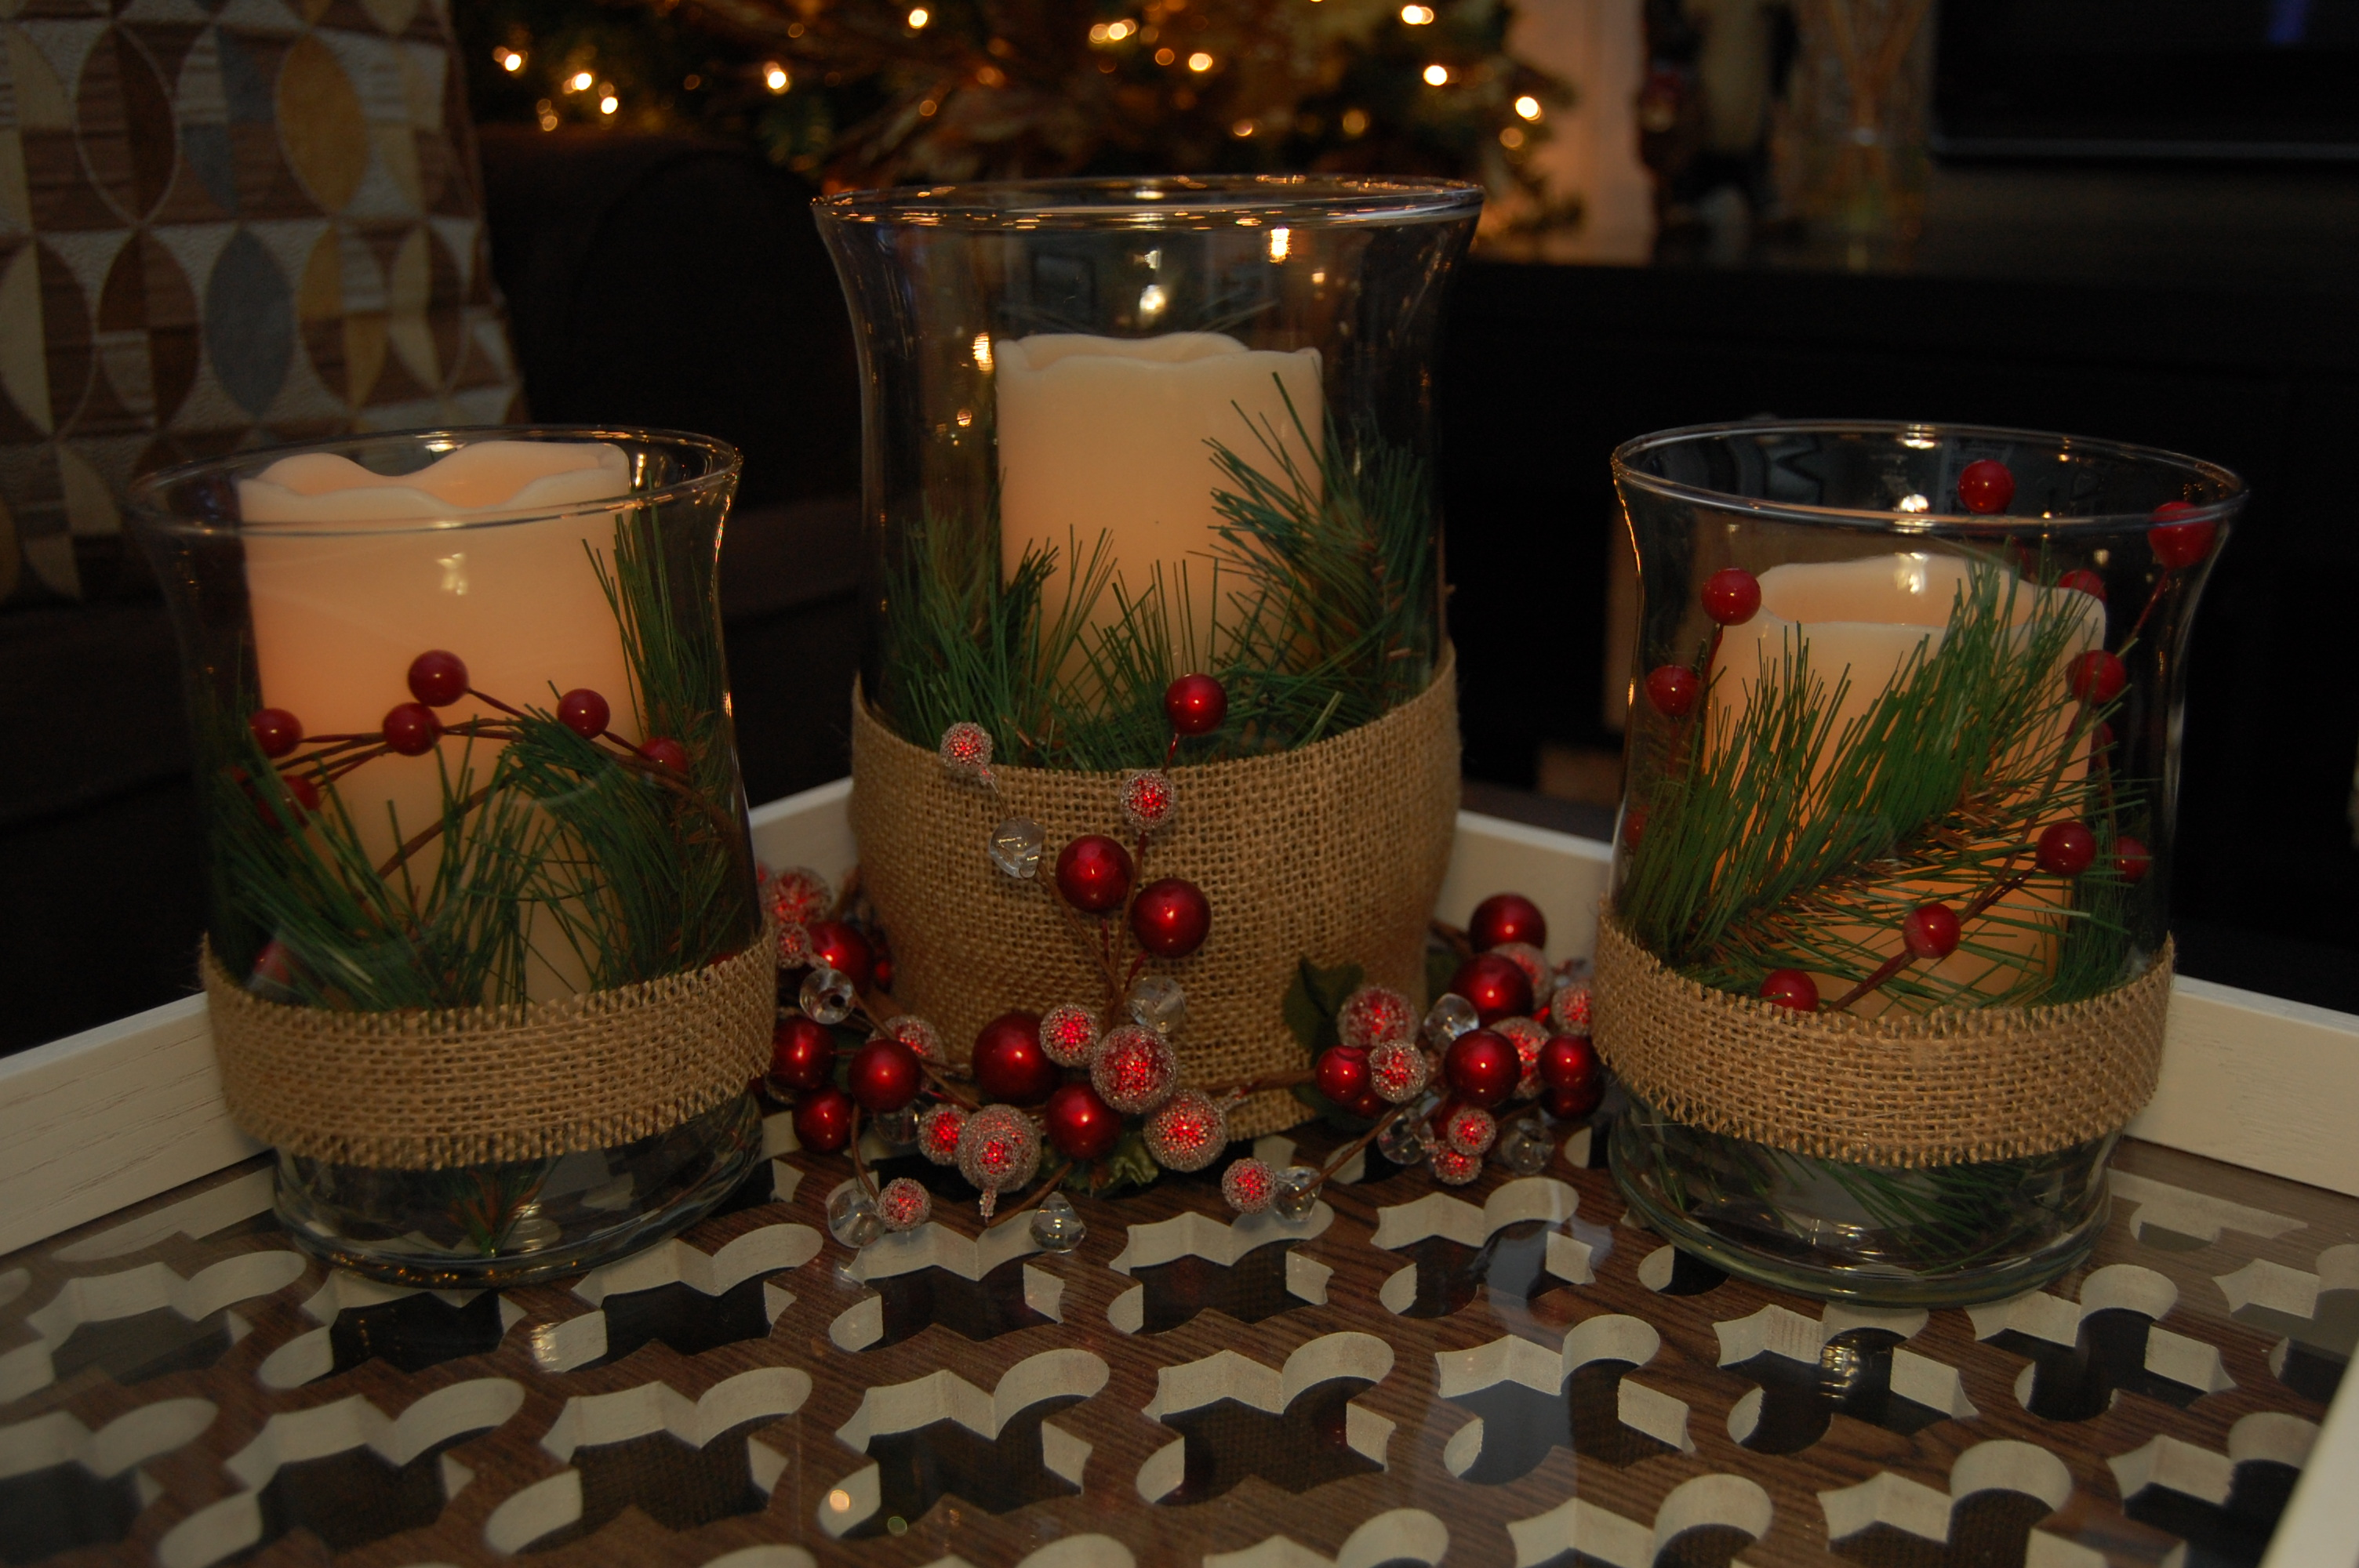 Christmas Candle Centerpiece Made2Style : dsc0335 from made2style.com size 3008 x 2000 jpeg 1516kB